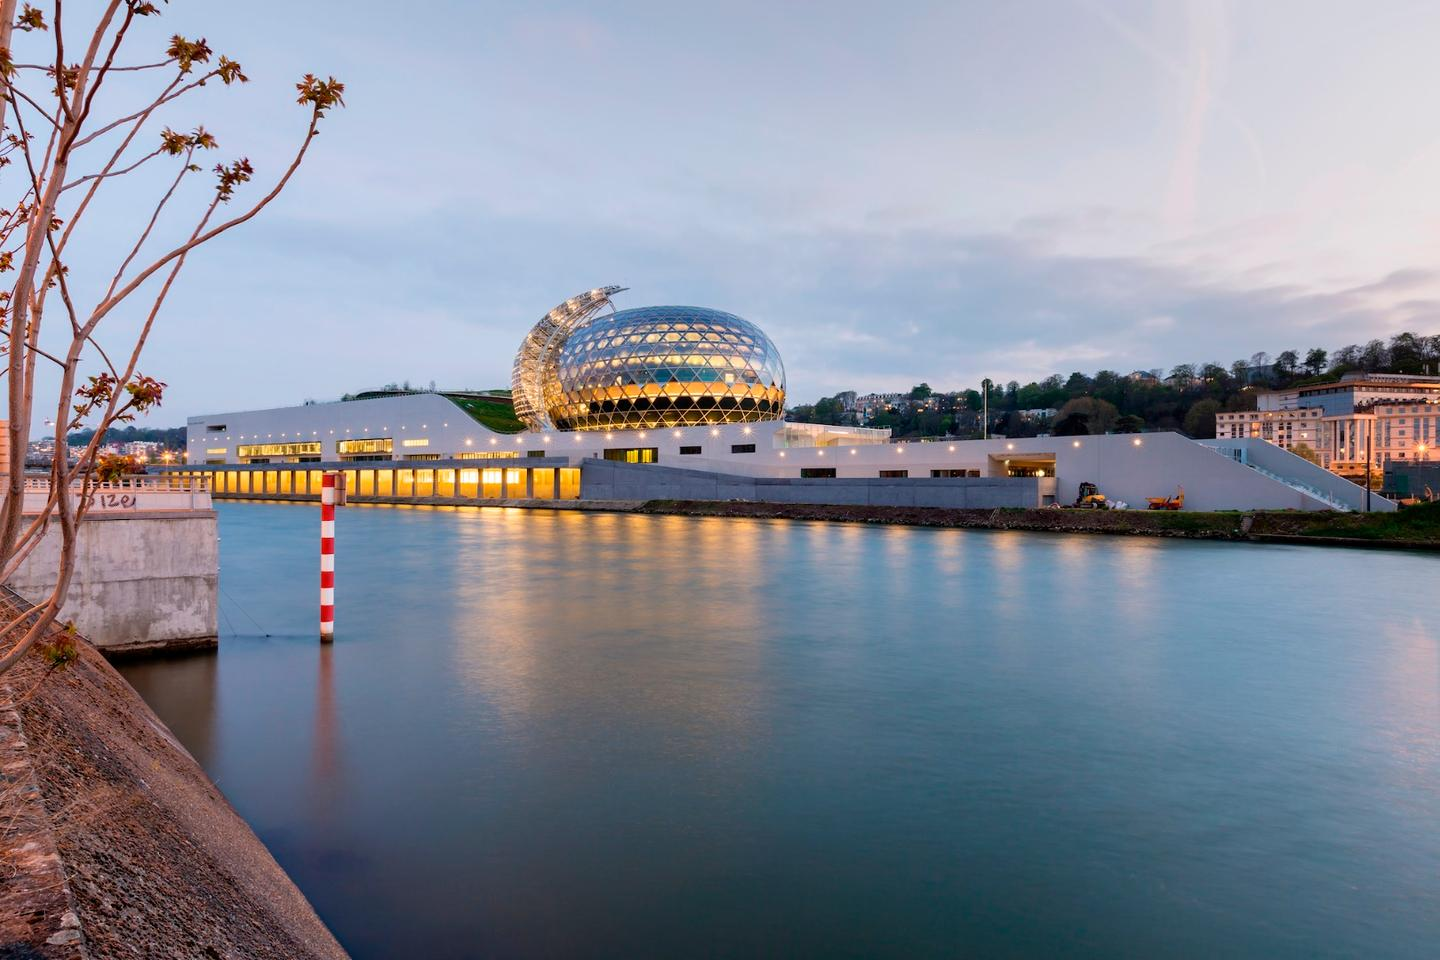 La Seine Musicale is located on an island in the center of Paris' Seine River